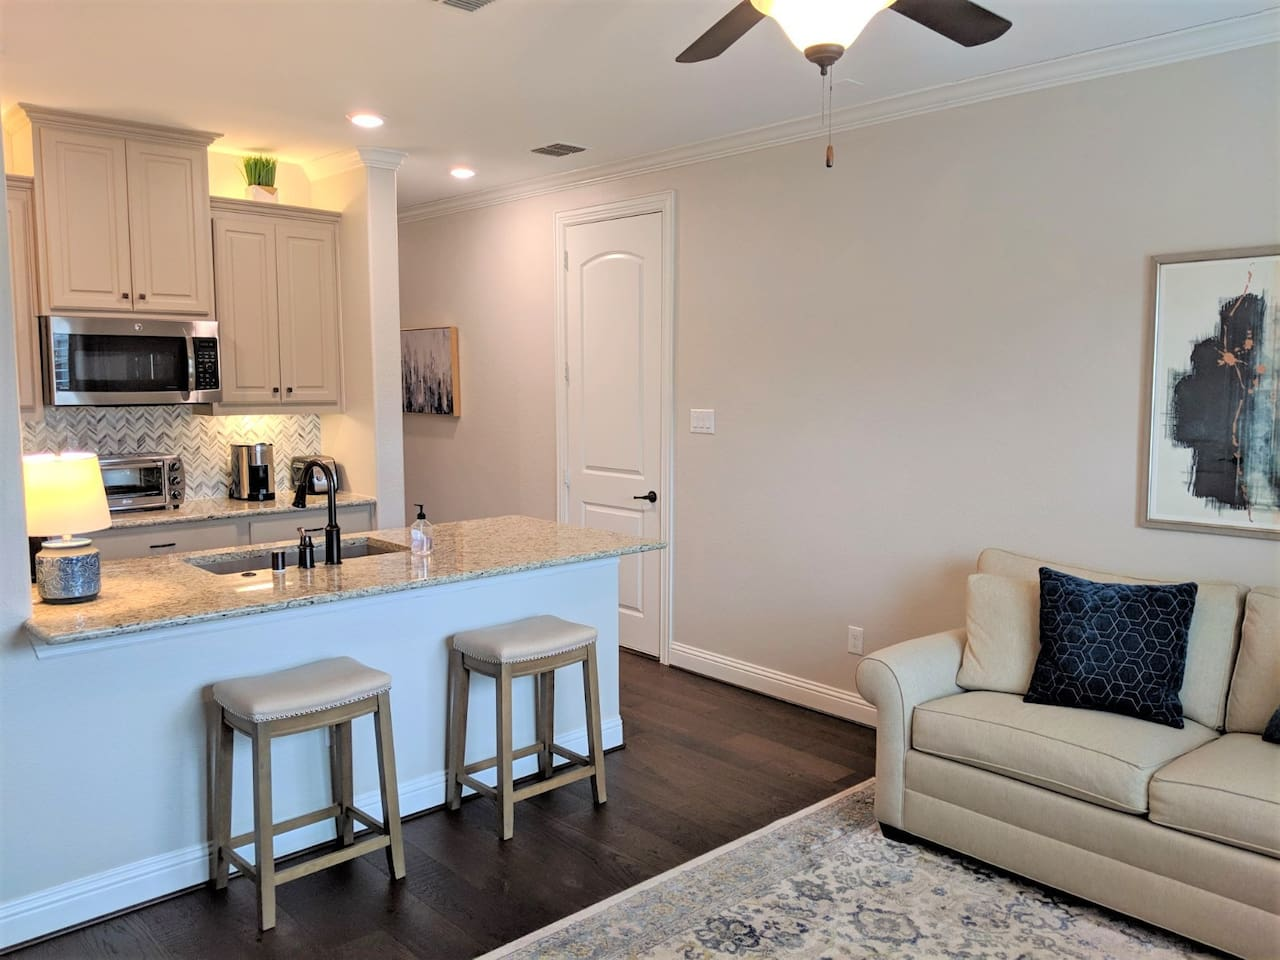 The guest suite  has an open floor plan with sitting area adjacent to kitchen and beautiful hardwood floors.